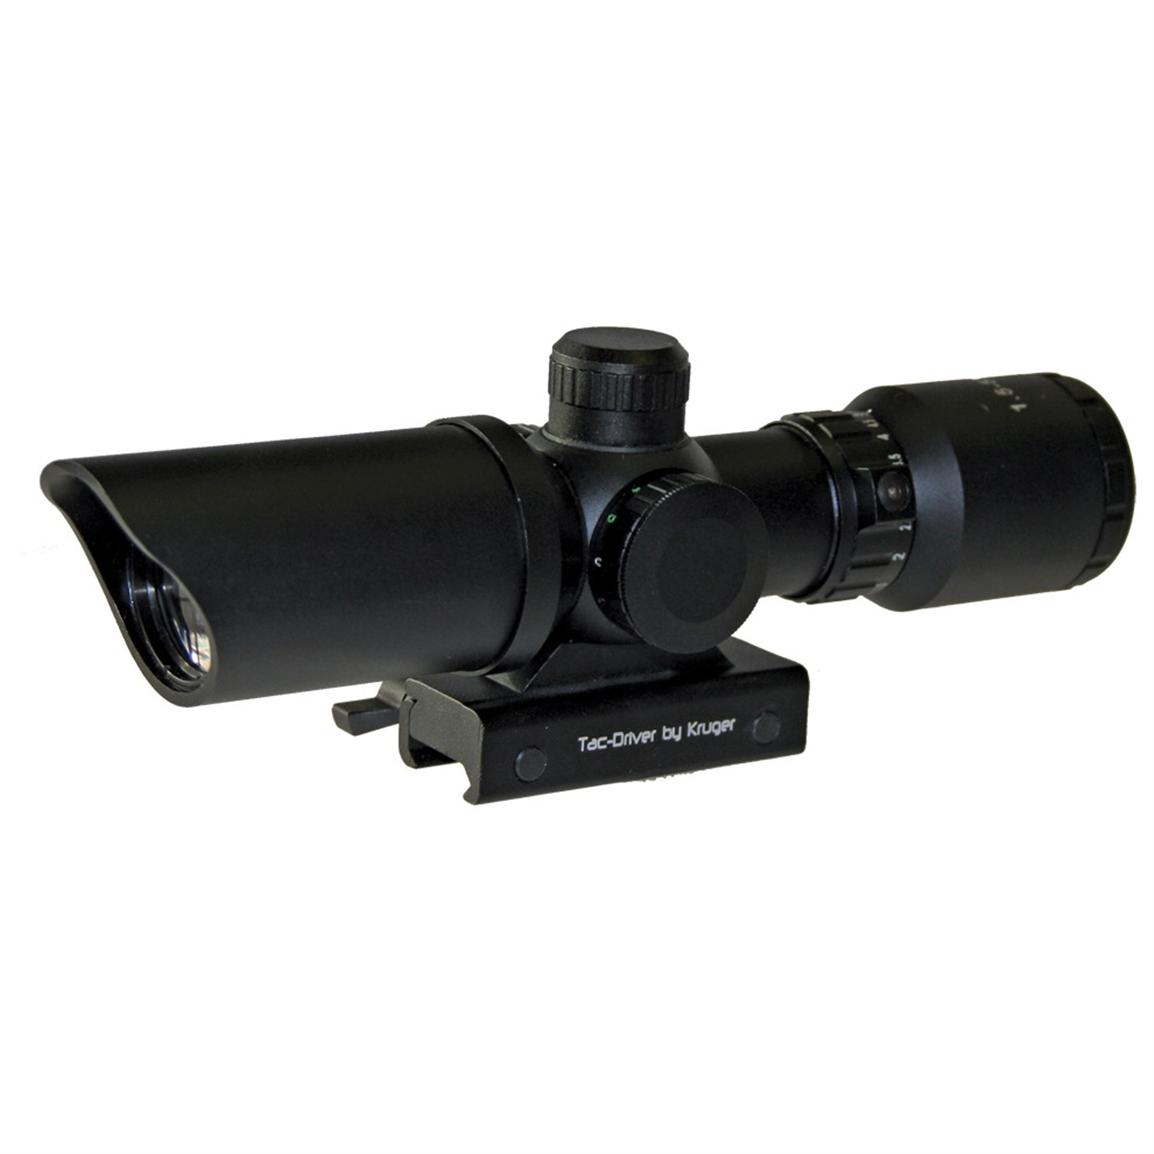 Kruger Optical® 1.5-5x32 mm TacDriver™ Tactical Duplex Reticle Rifle Scope